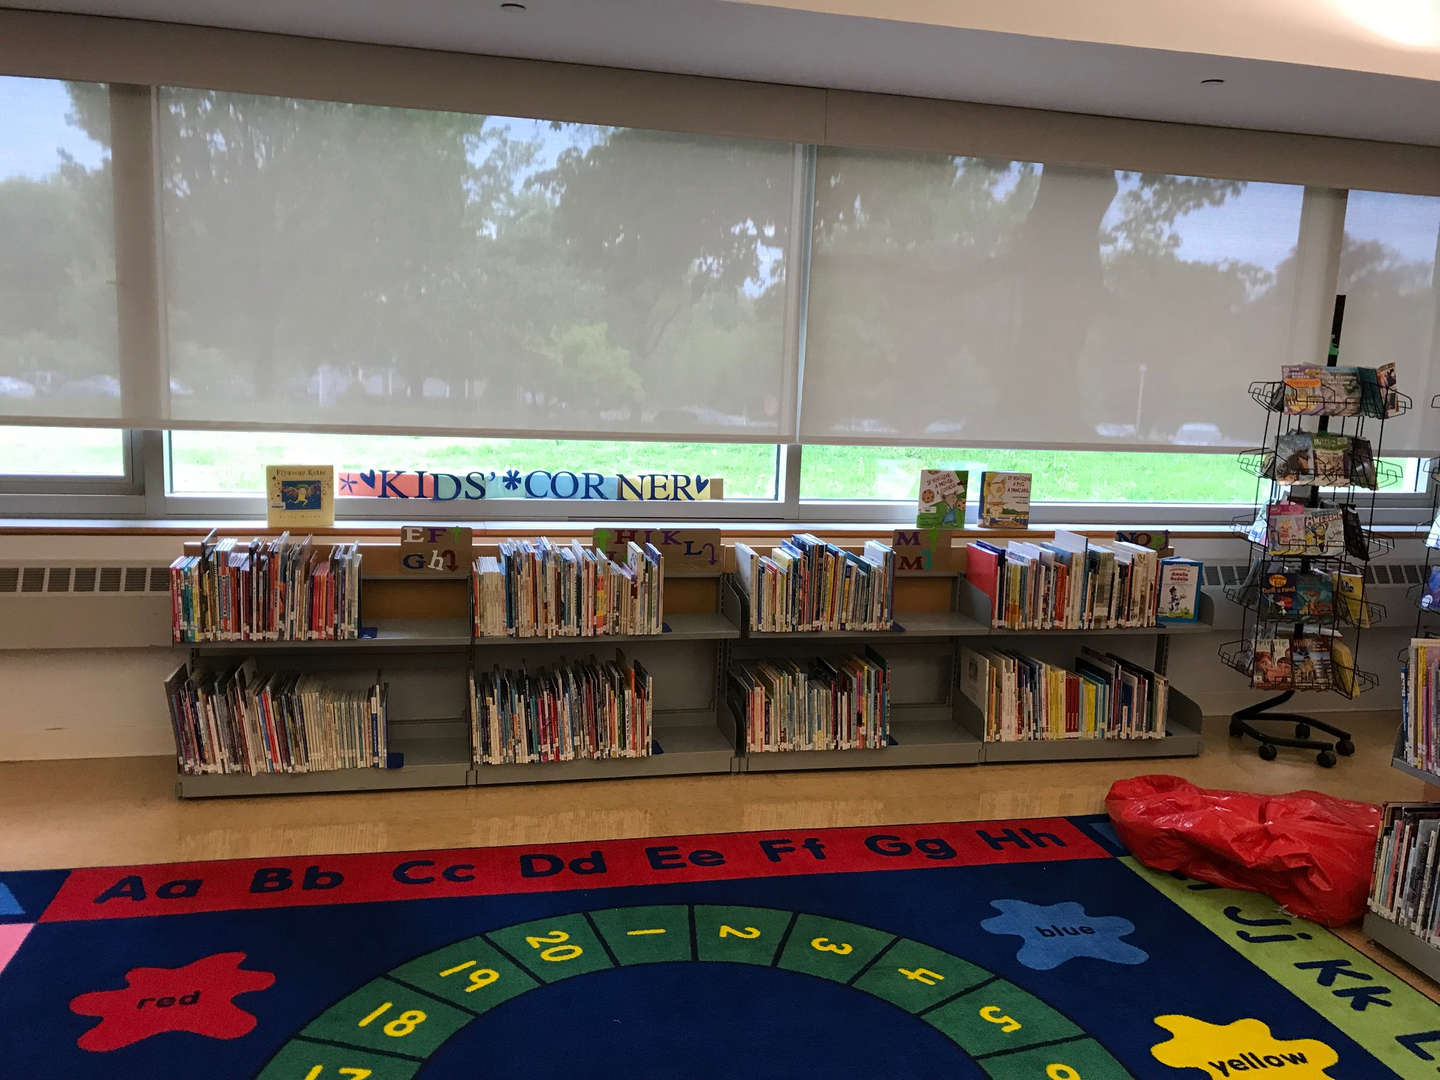 Windows with Kids' Corner posted on the sill and elementary books below.